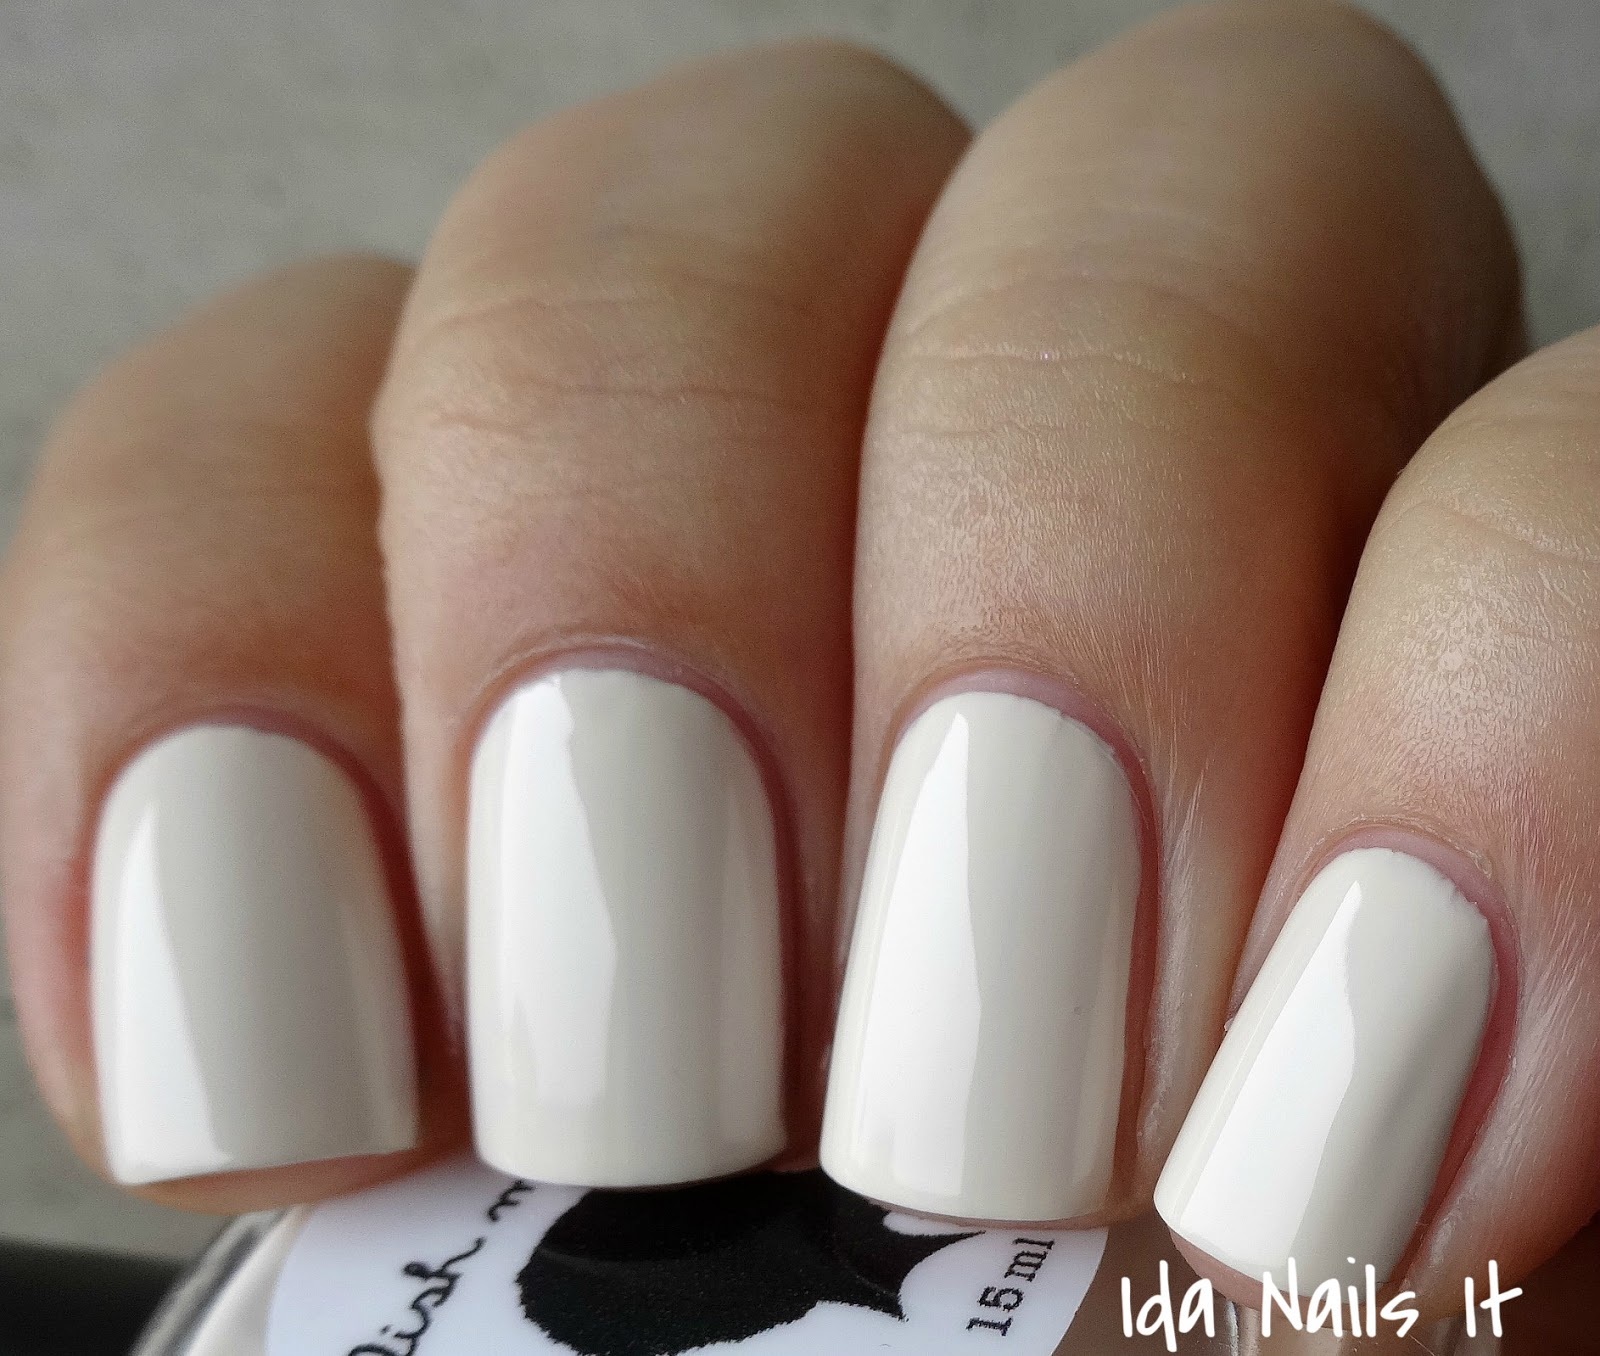 Ida Nails It: Polish My Life Bare Undies Trio: Swatches and Review